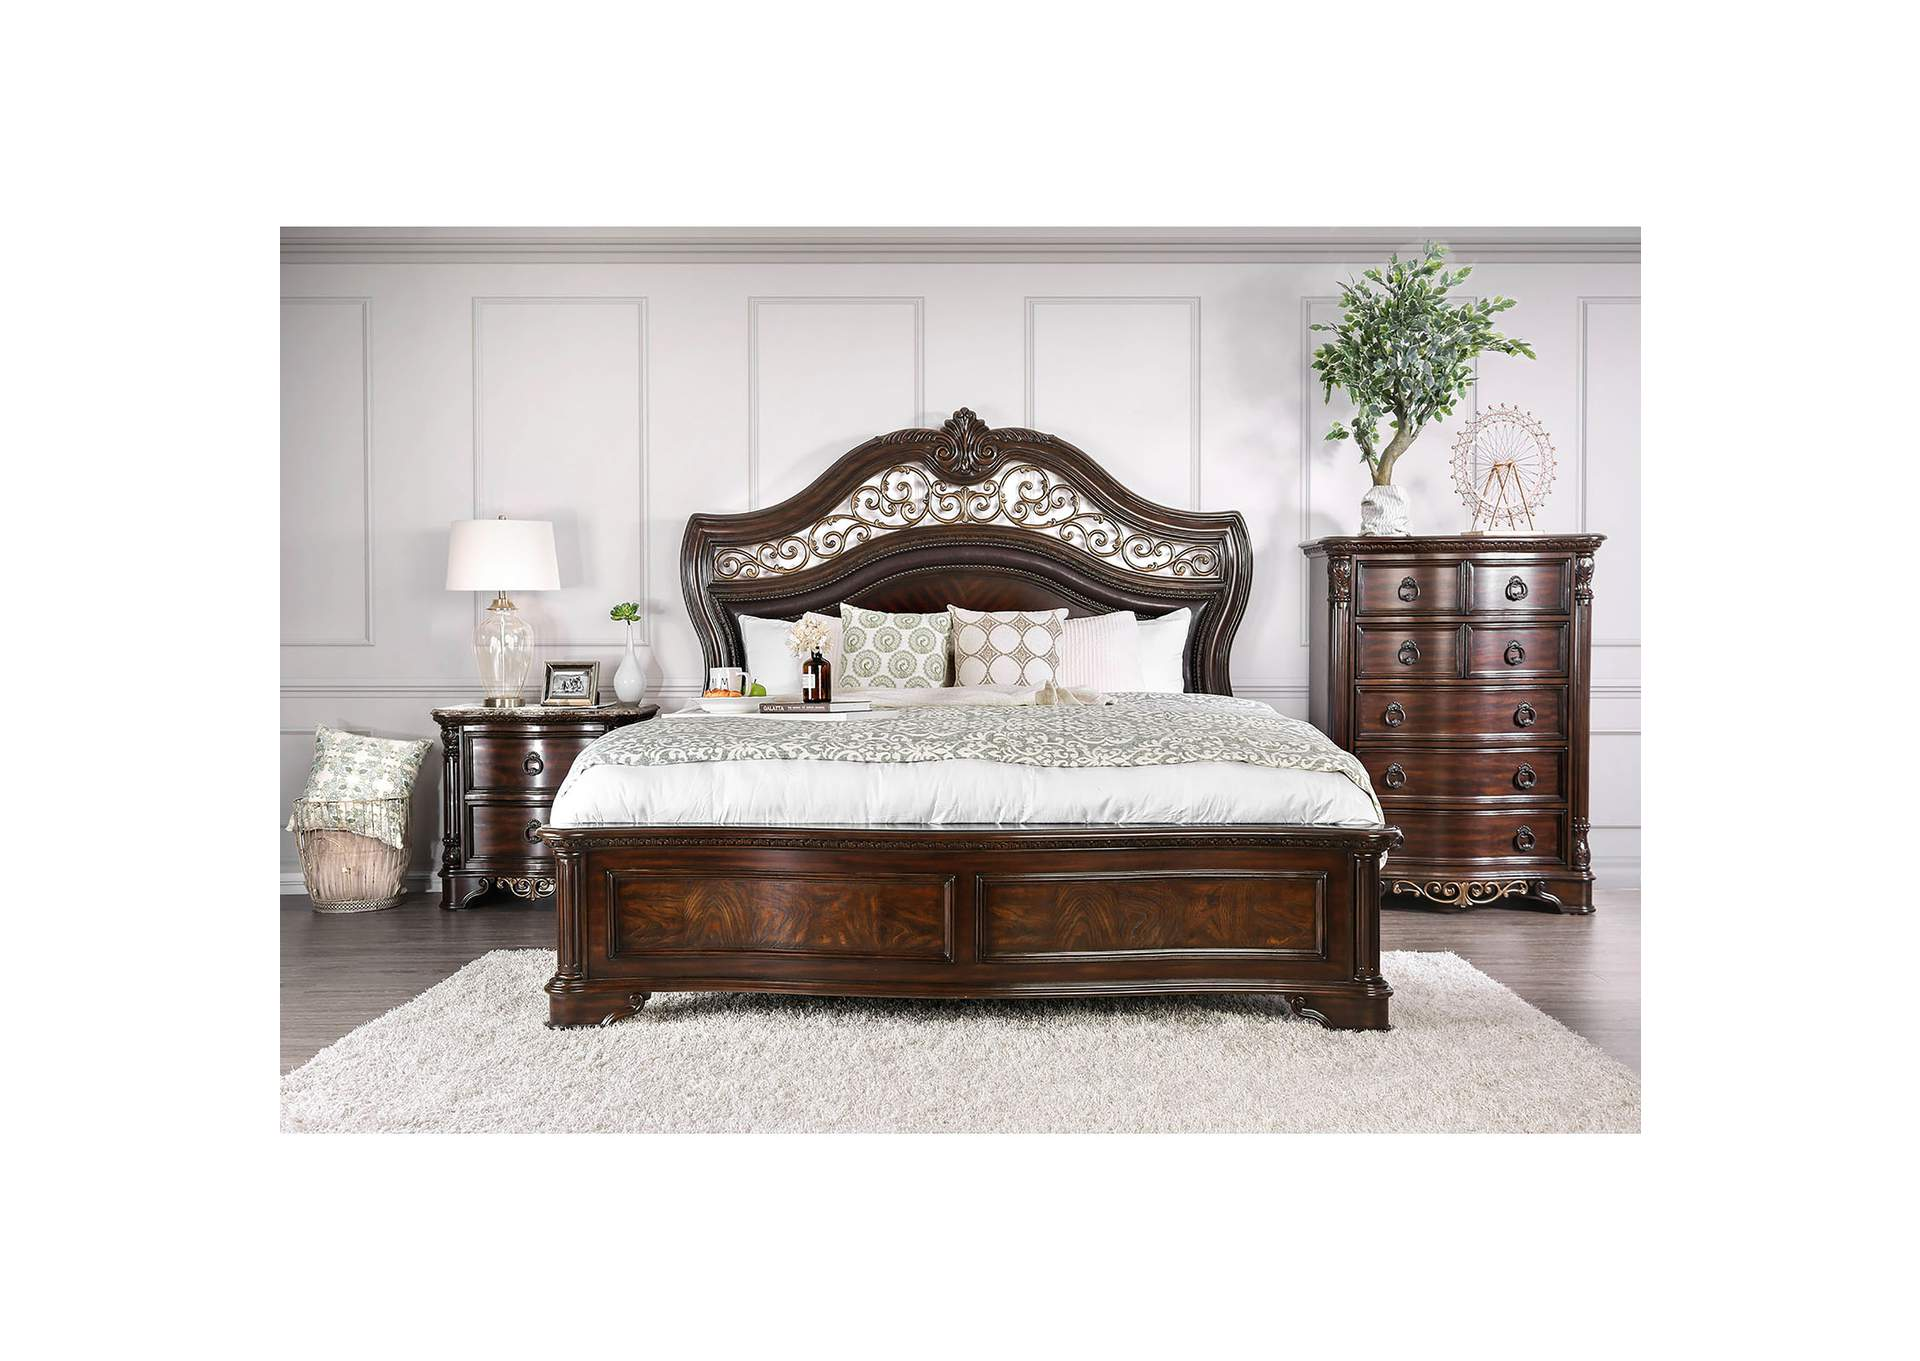 Menodora Brown Cherry Queen Platform Bed,Furniture of America